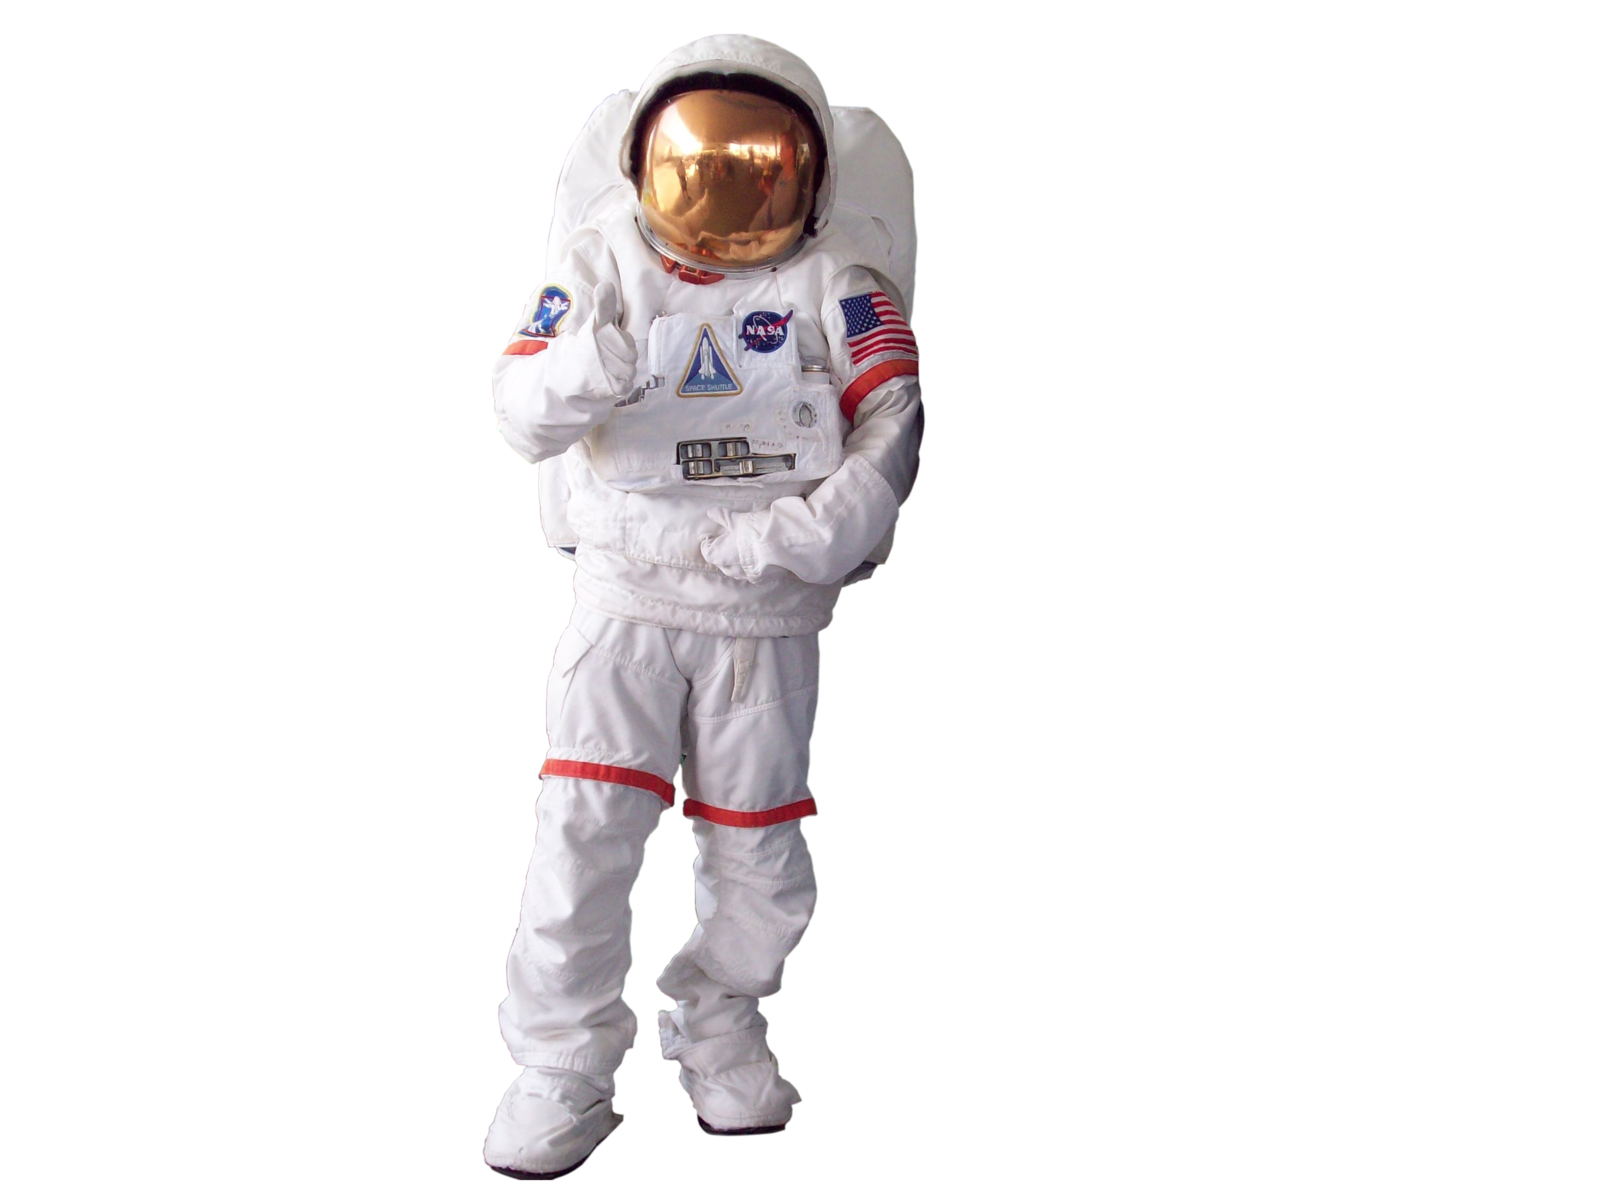 Spaceman png hd transparent. Astronaut clipart body picture free library